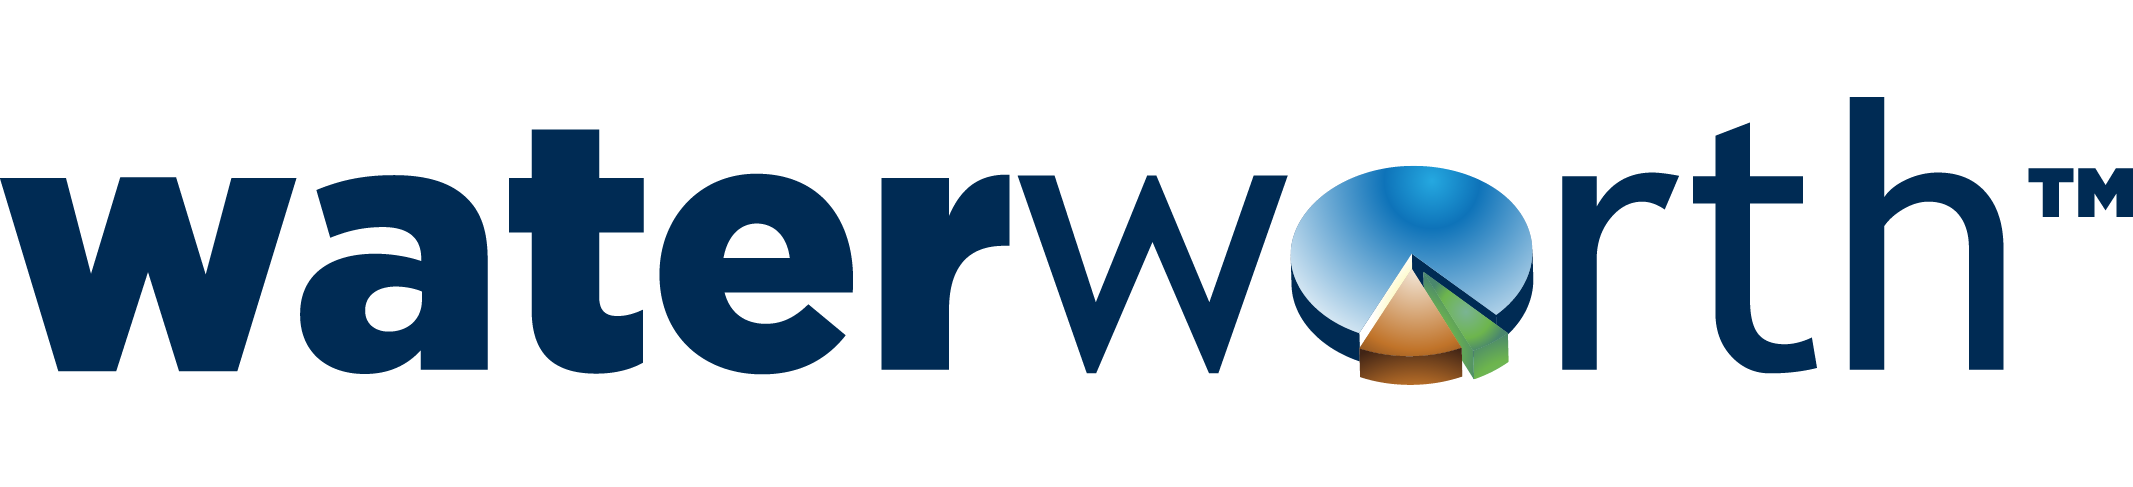 waterworth logo